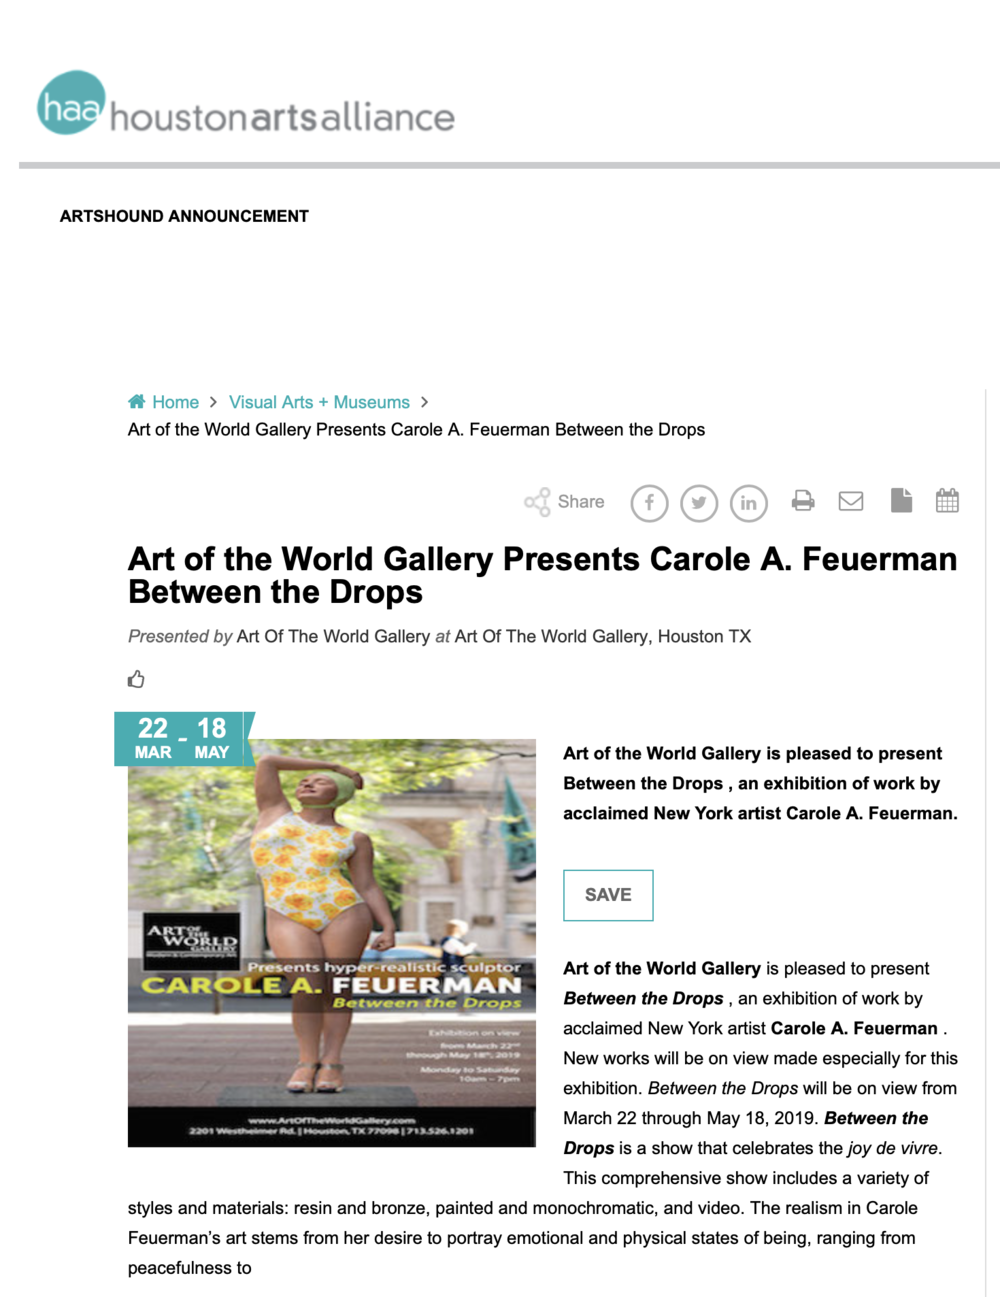 Art of the World Gallery Presents Carole A. Feuerman Between the Drops